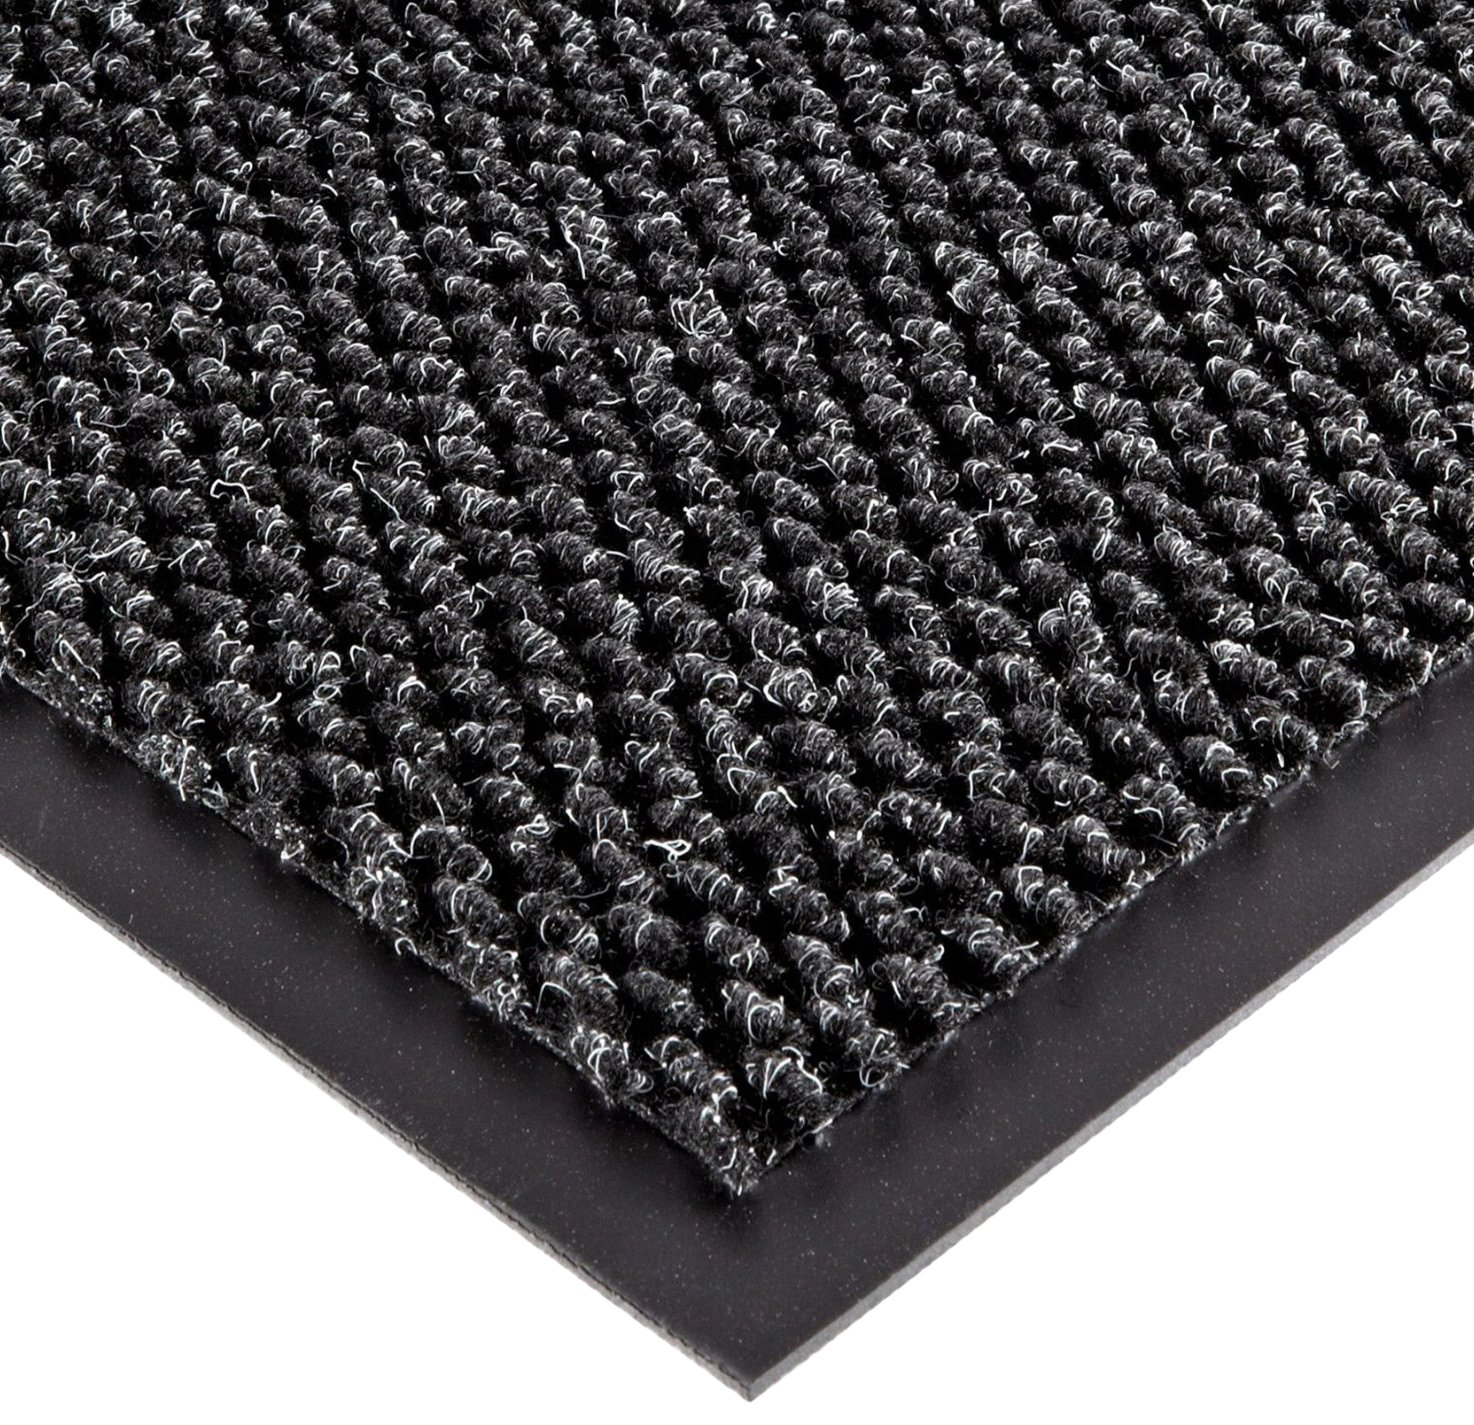 Notrax 136 Polynib Entrance Mat, for Lobbies and Indoor Entranceways, 3' Width x 4' Length x 1/4'' Thickness, Charcoal